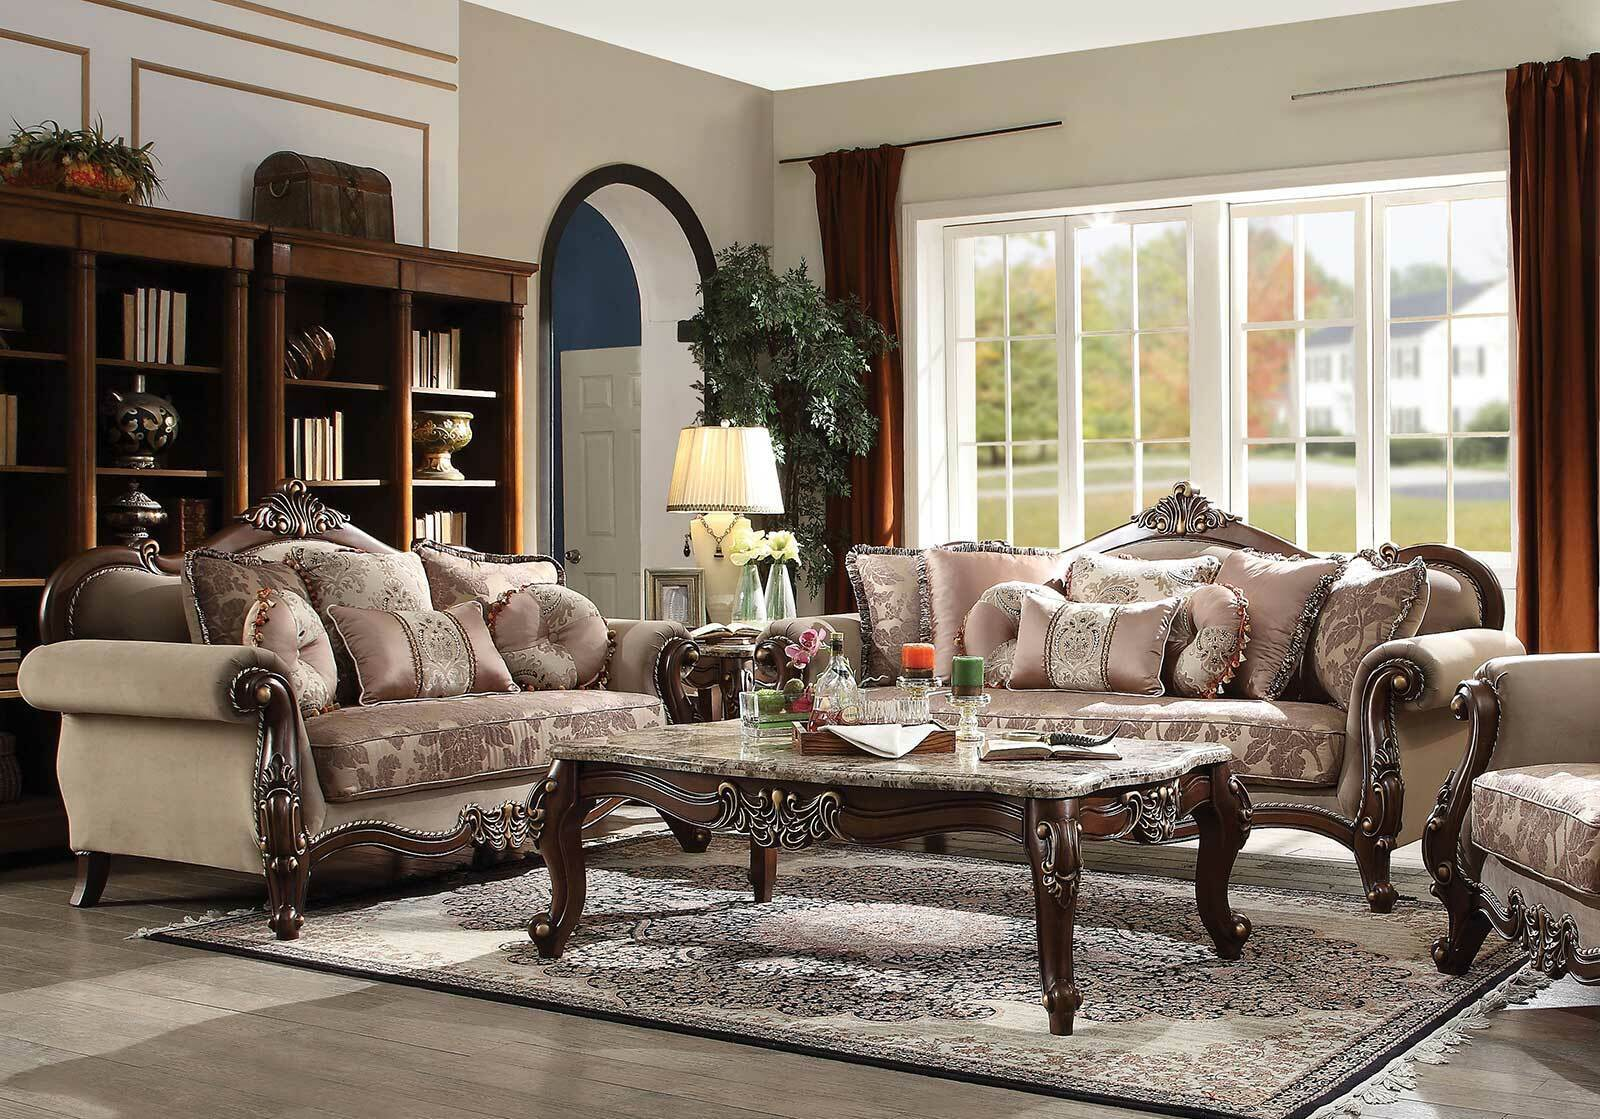 Picture of: New Old World Living Room Walnut Brown Wood Trim Fabric Sofa Loveseat Set Igax For Sale Online